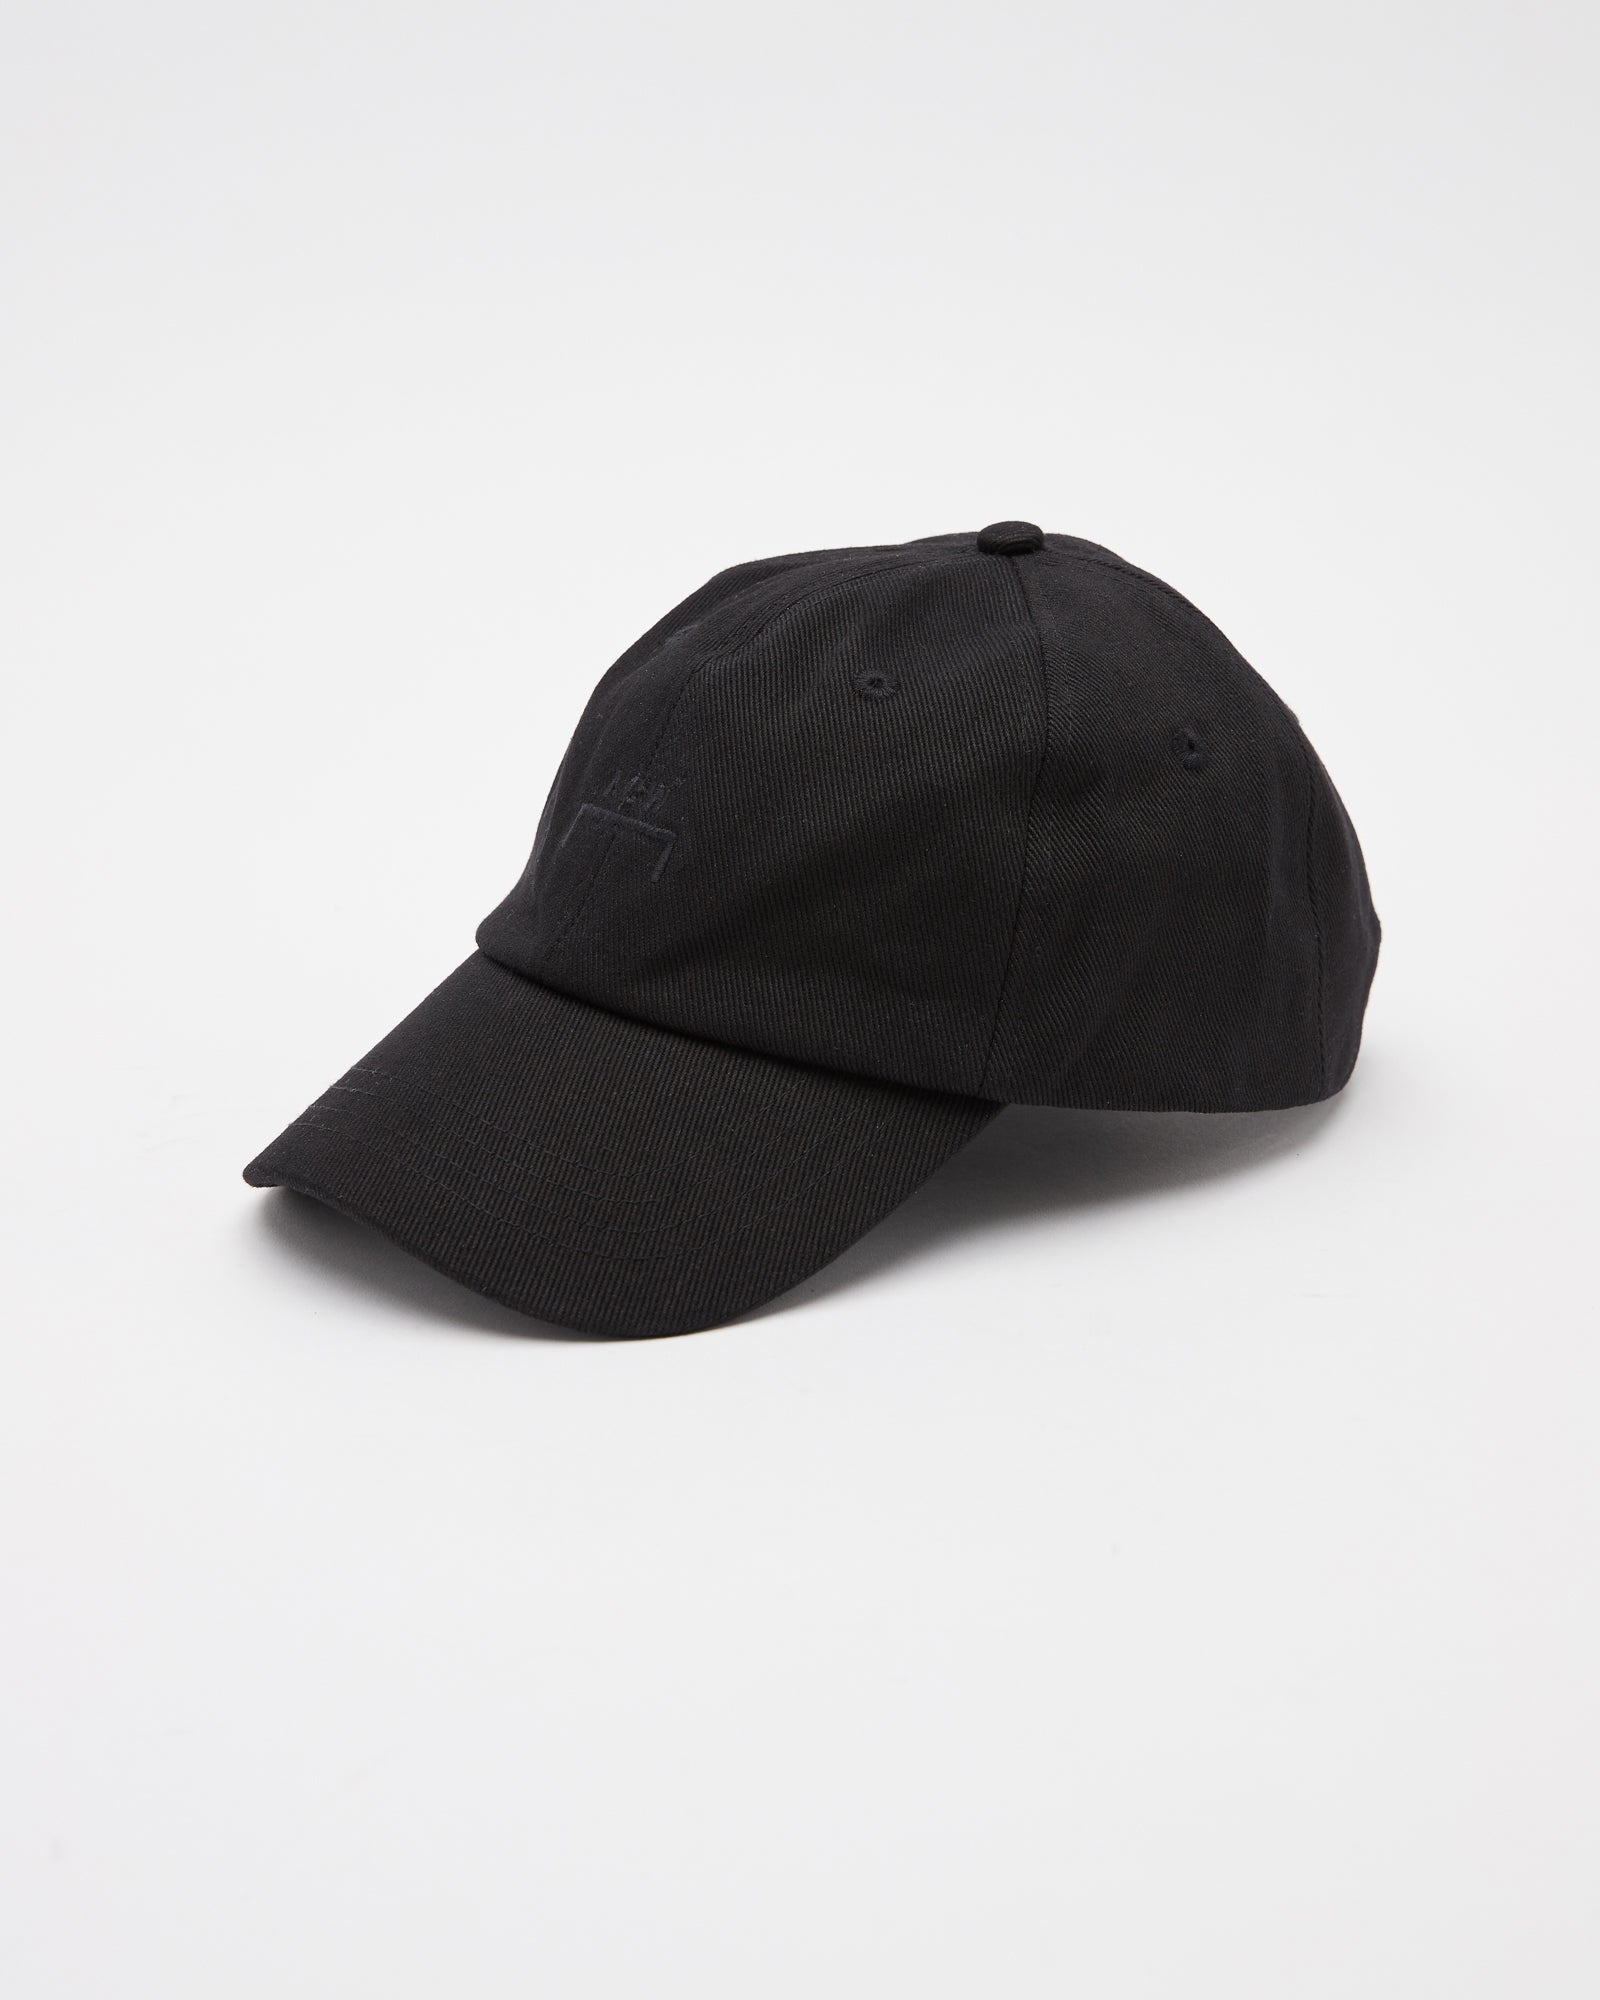 Bracket Cap in Black